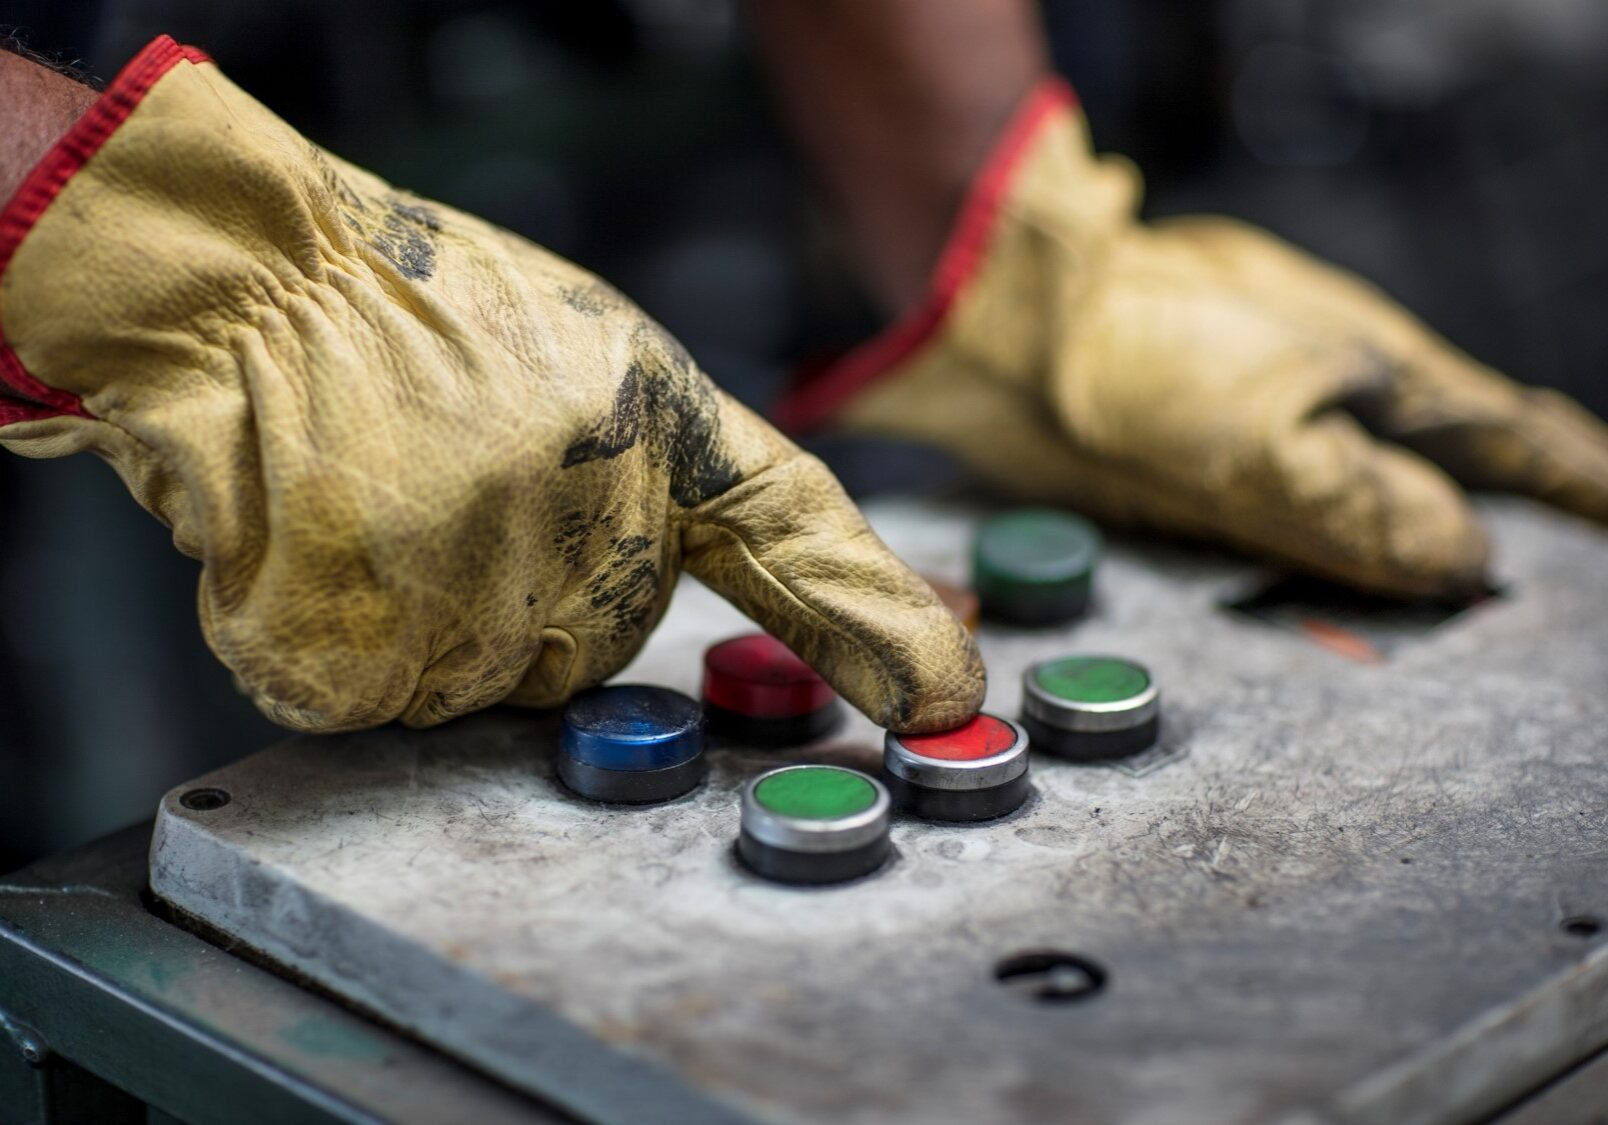 worker pushing buttons